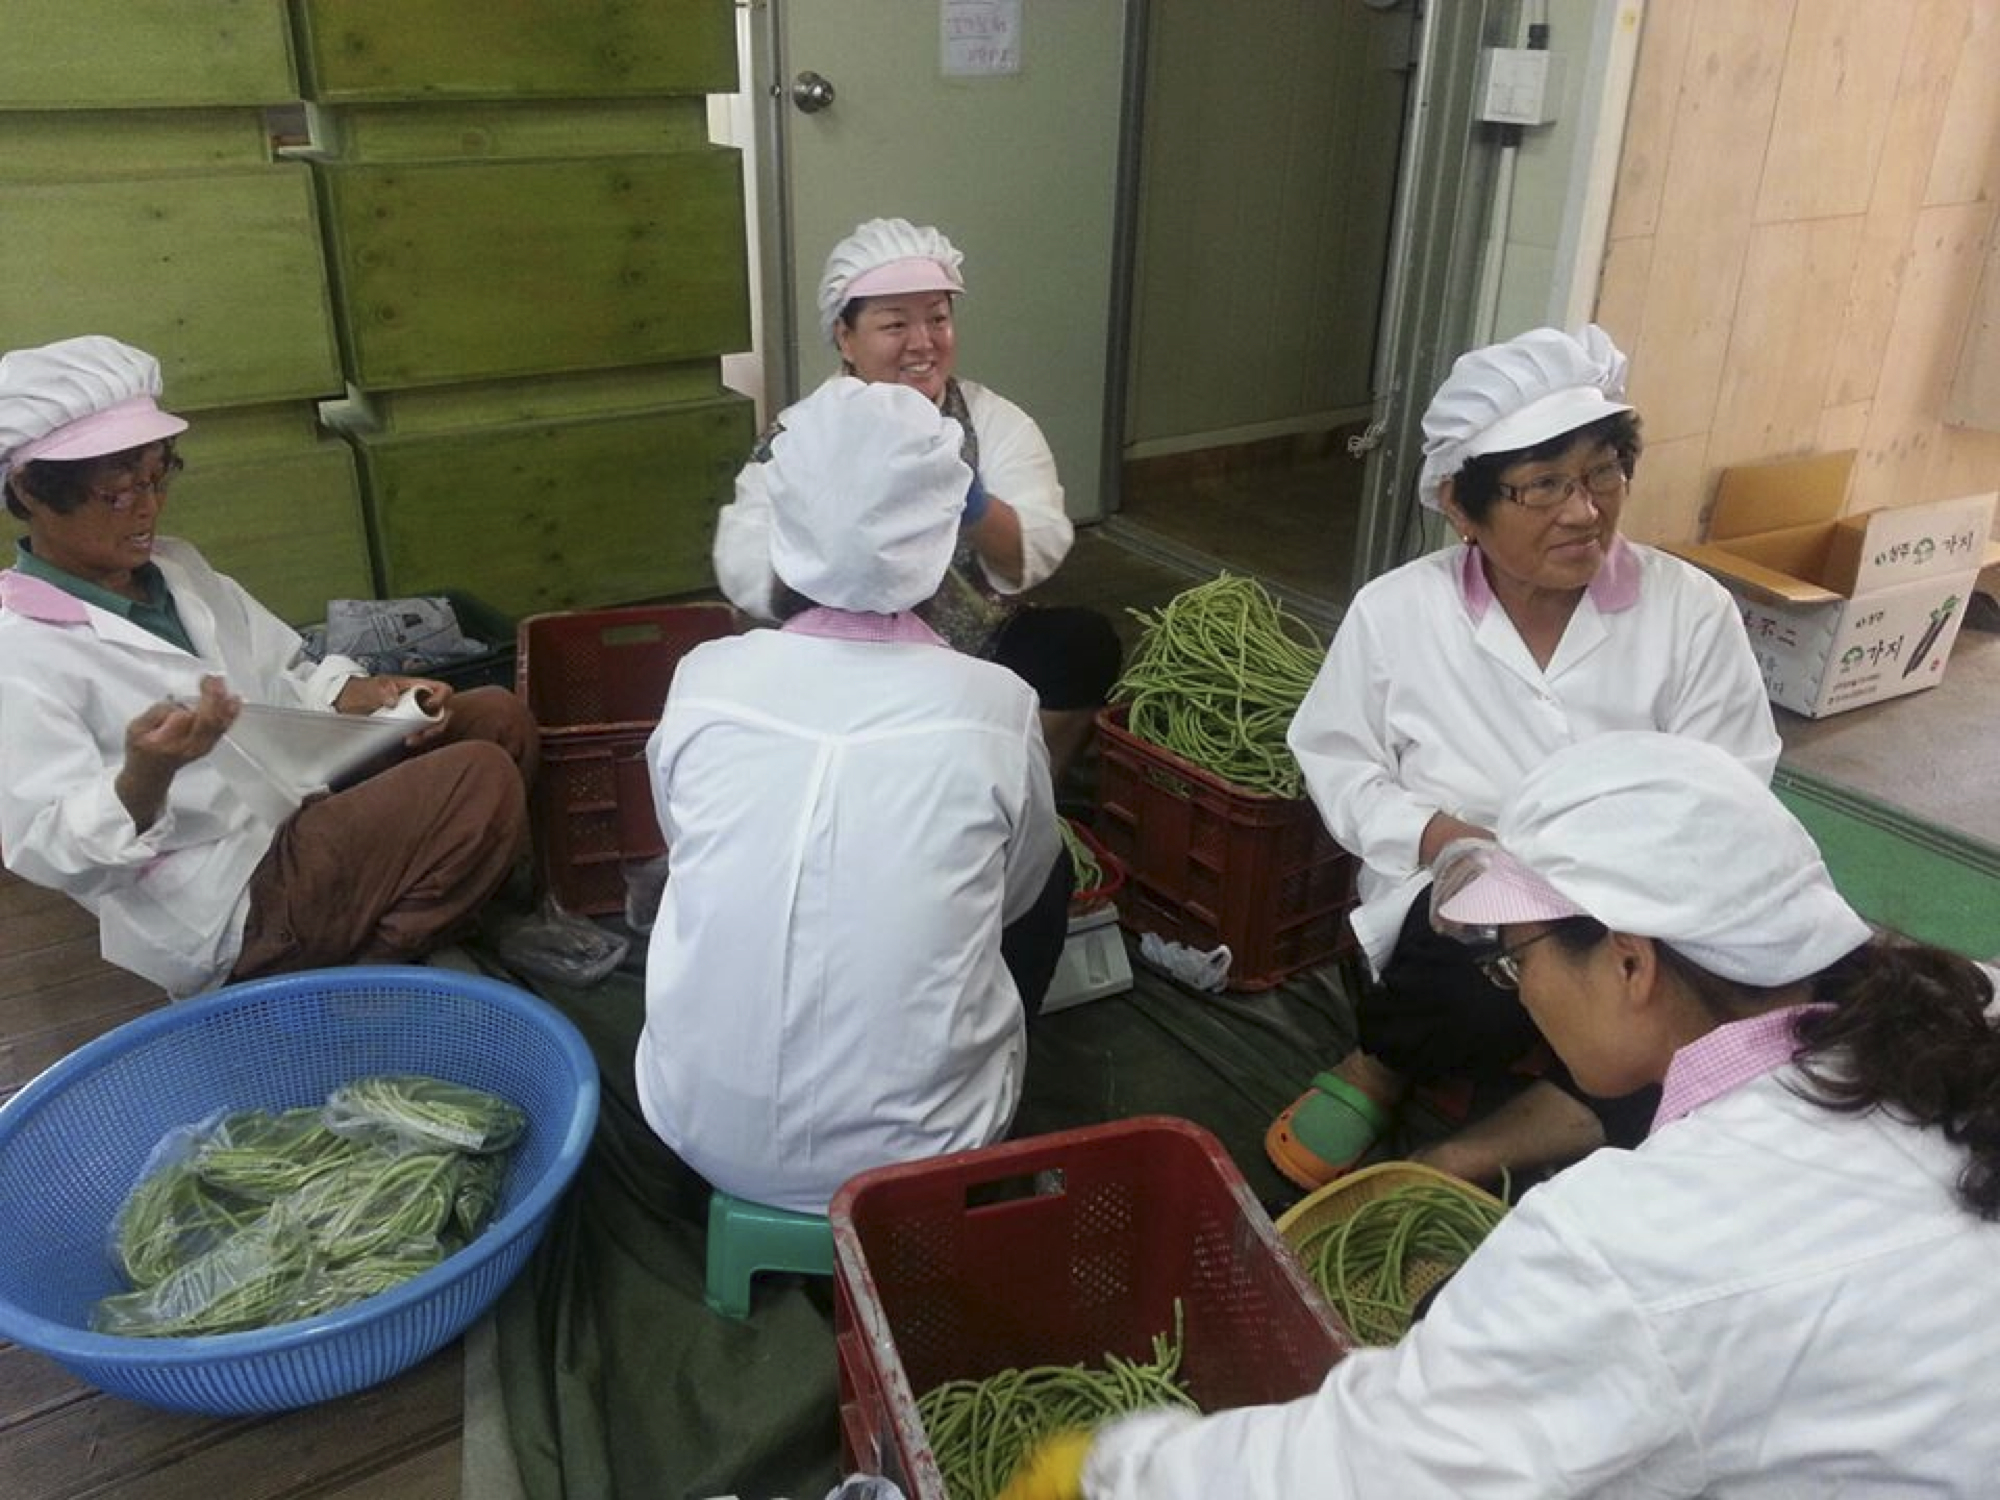 kwpa-sisters-garden-food-sovereignty-organic-agriculture-korea